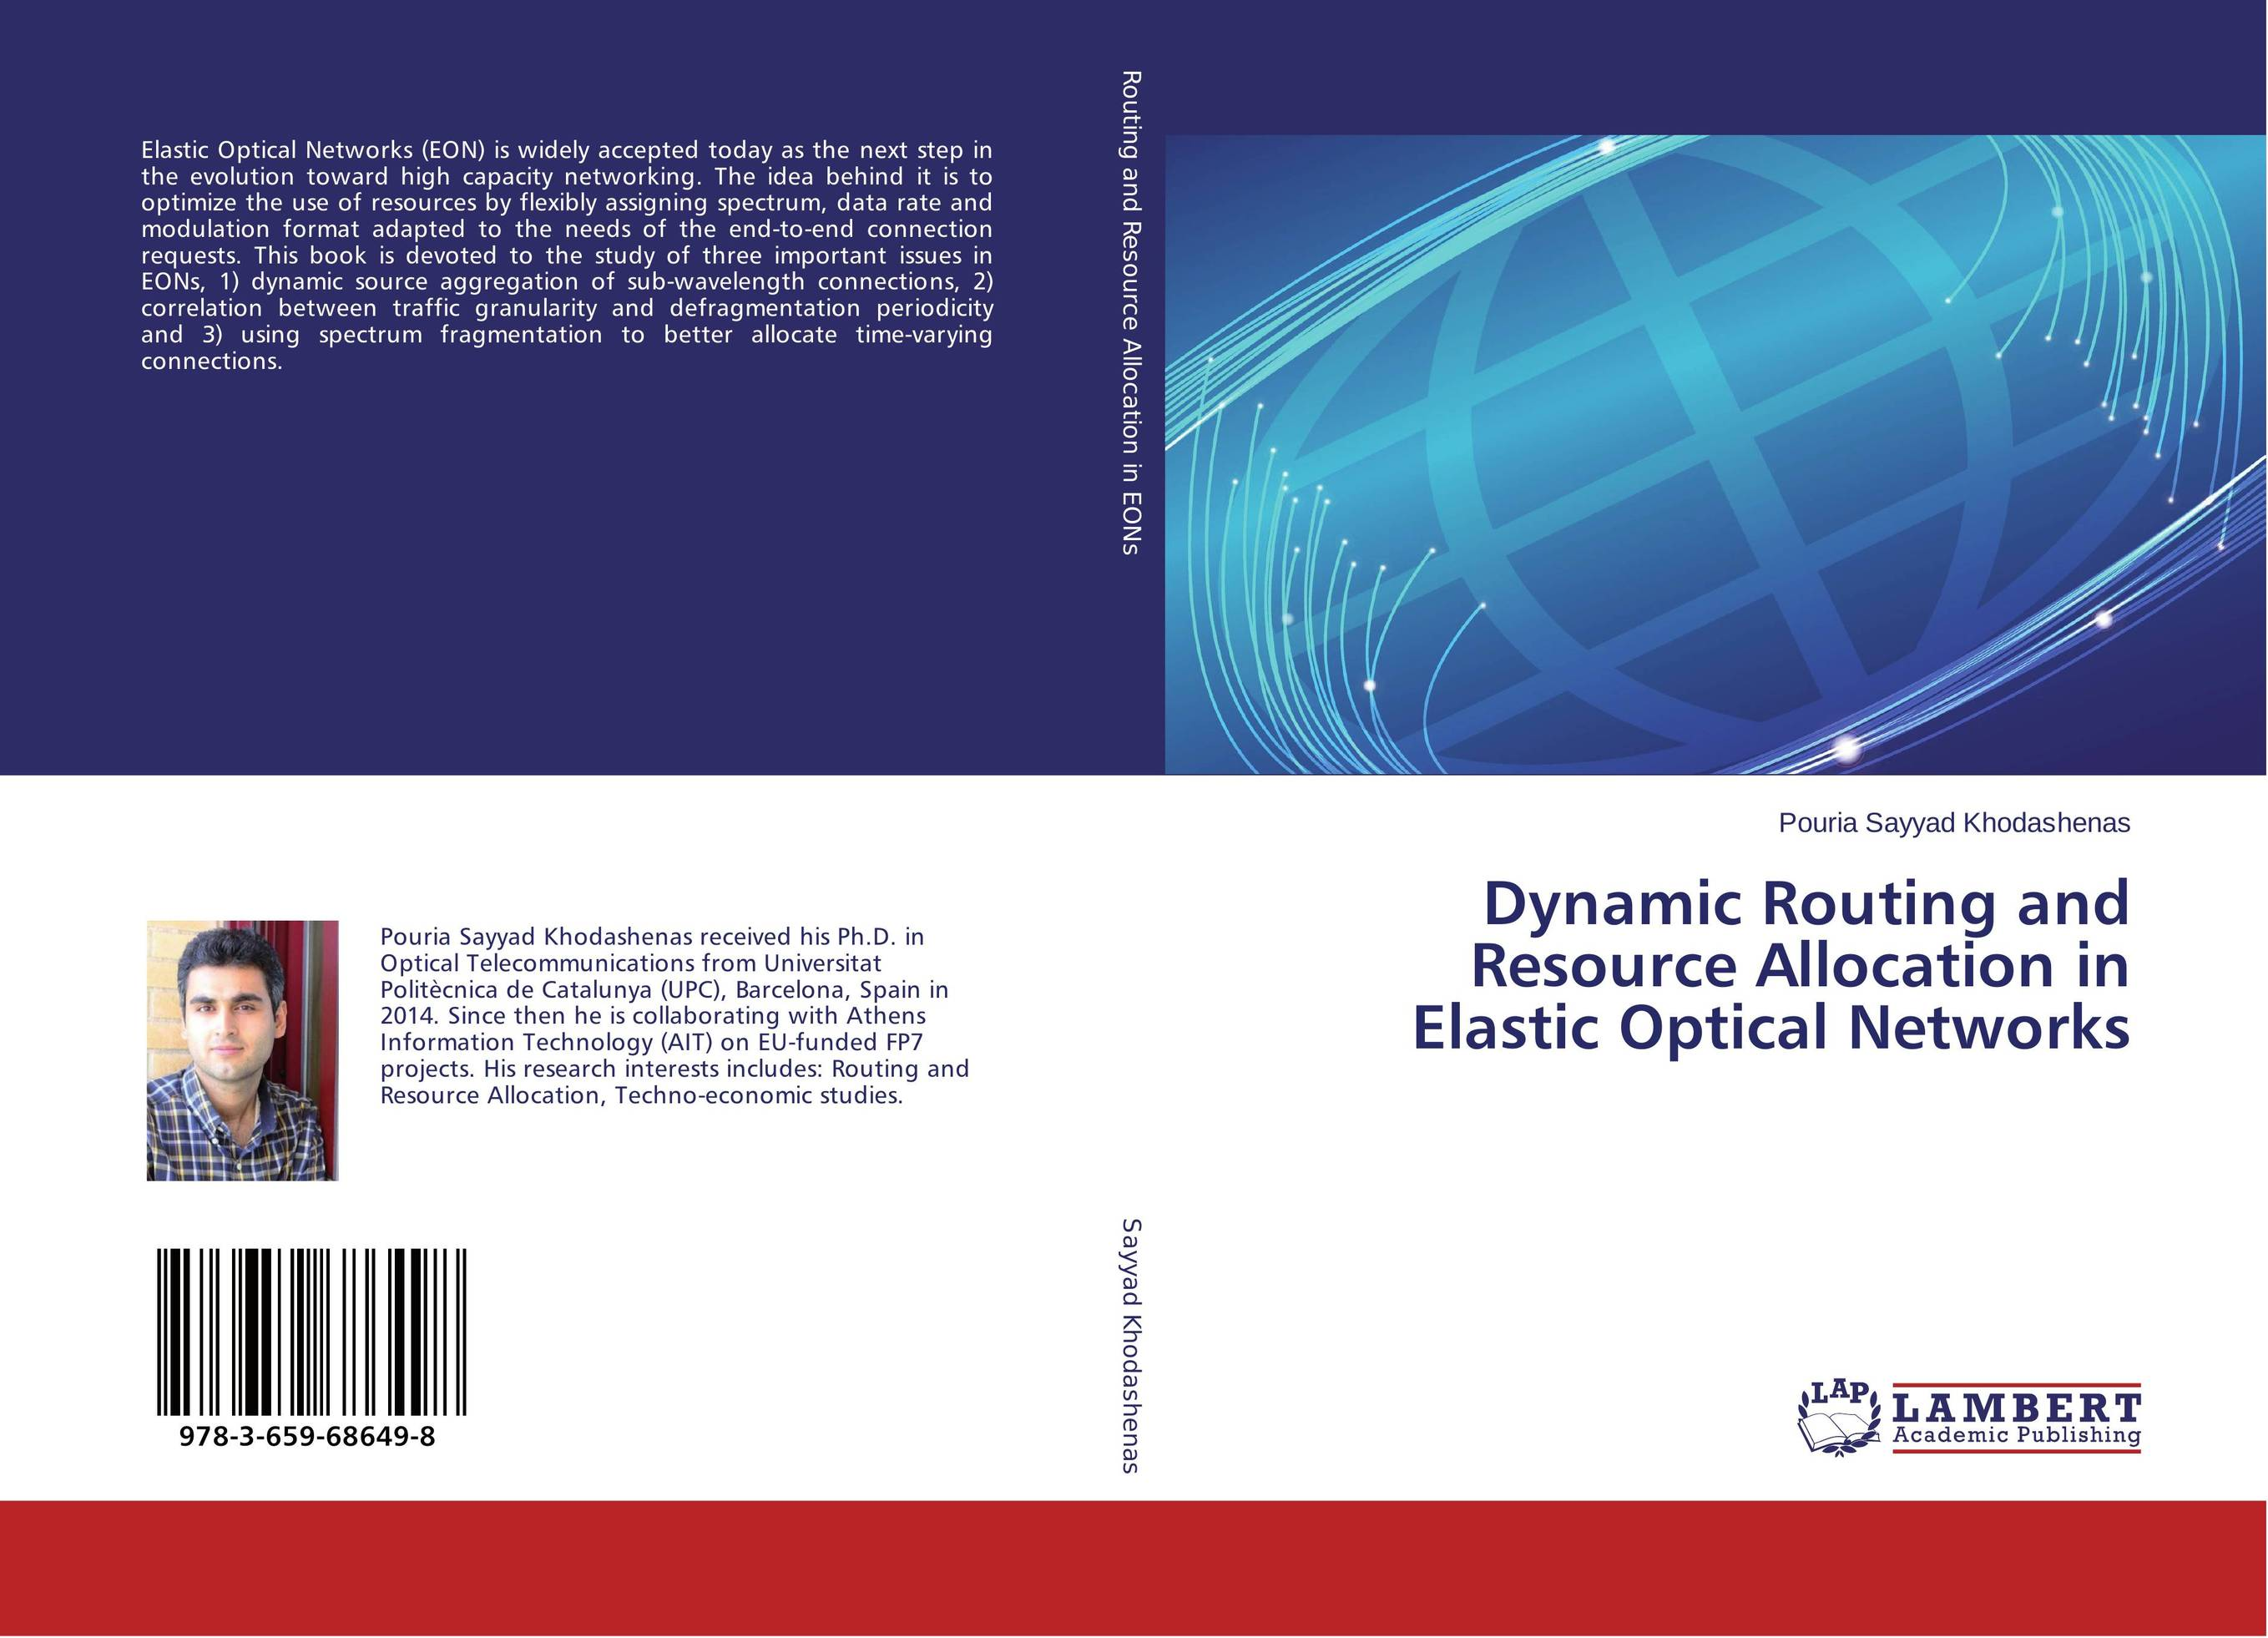 Dynamic Routing and Resource Allocation in Elastic Optical Networks dynamic biological networks – stomatogast